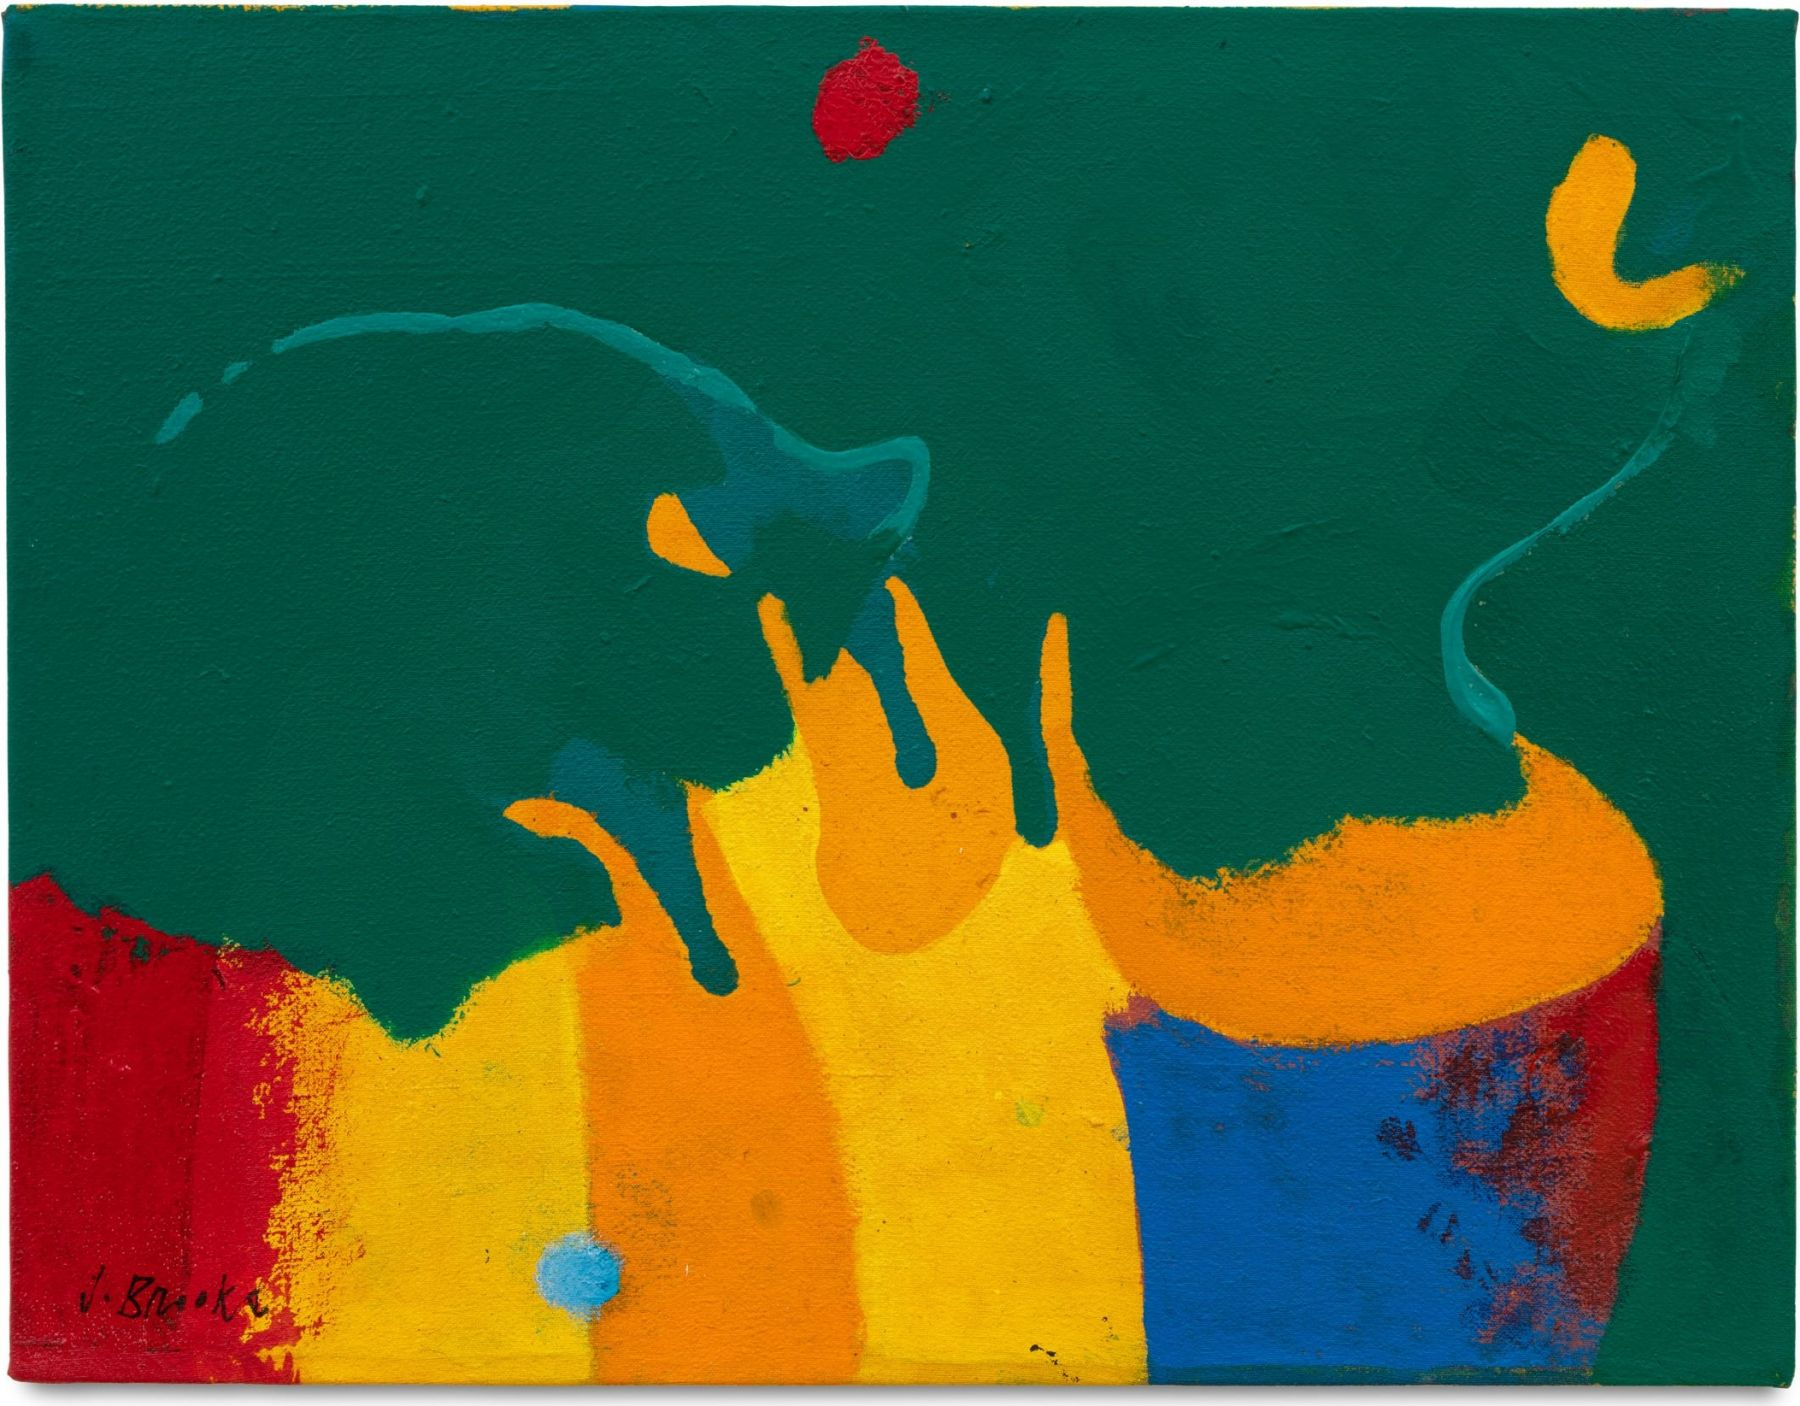 Aamo, 1981 Acrylic and oil on canvas